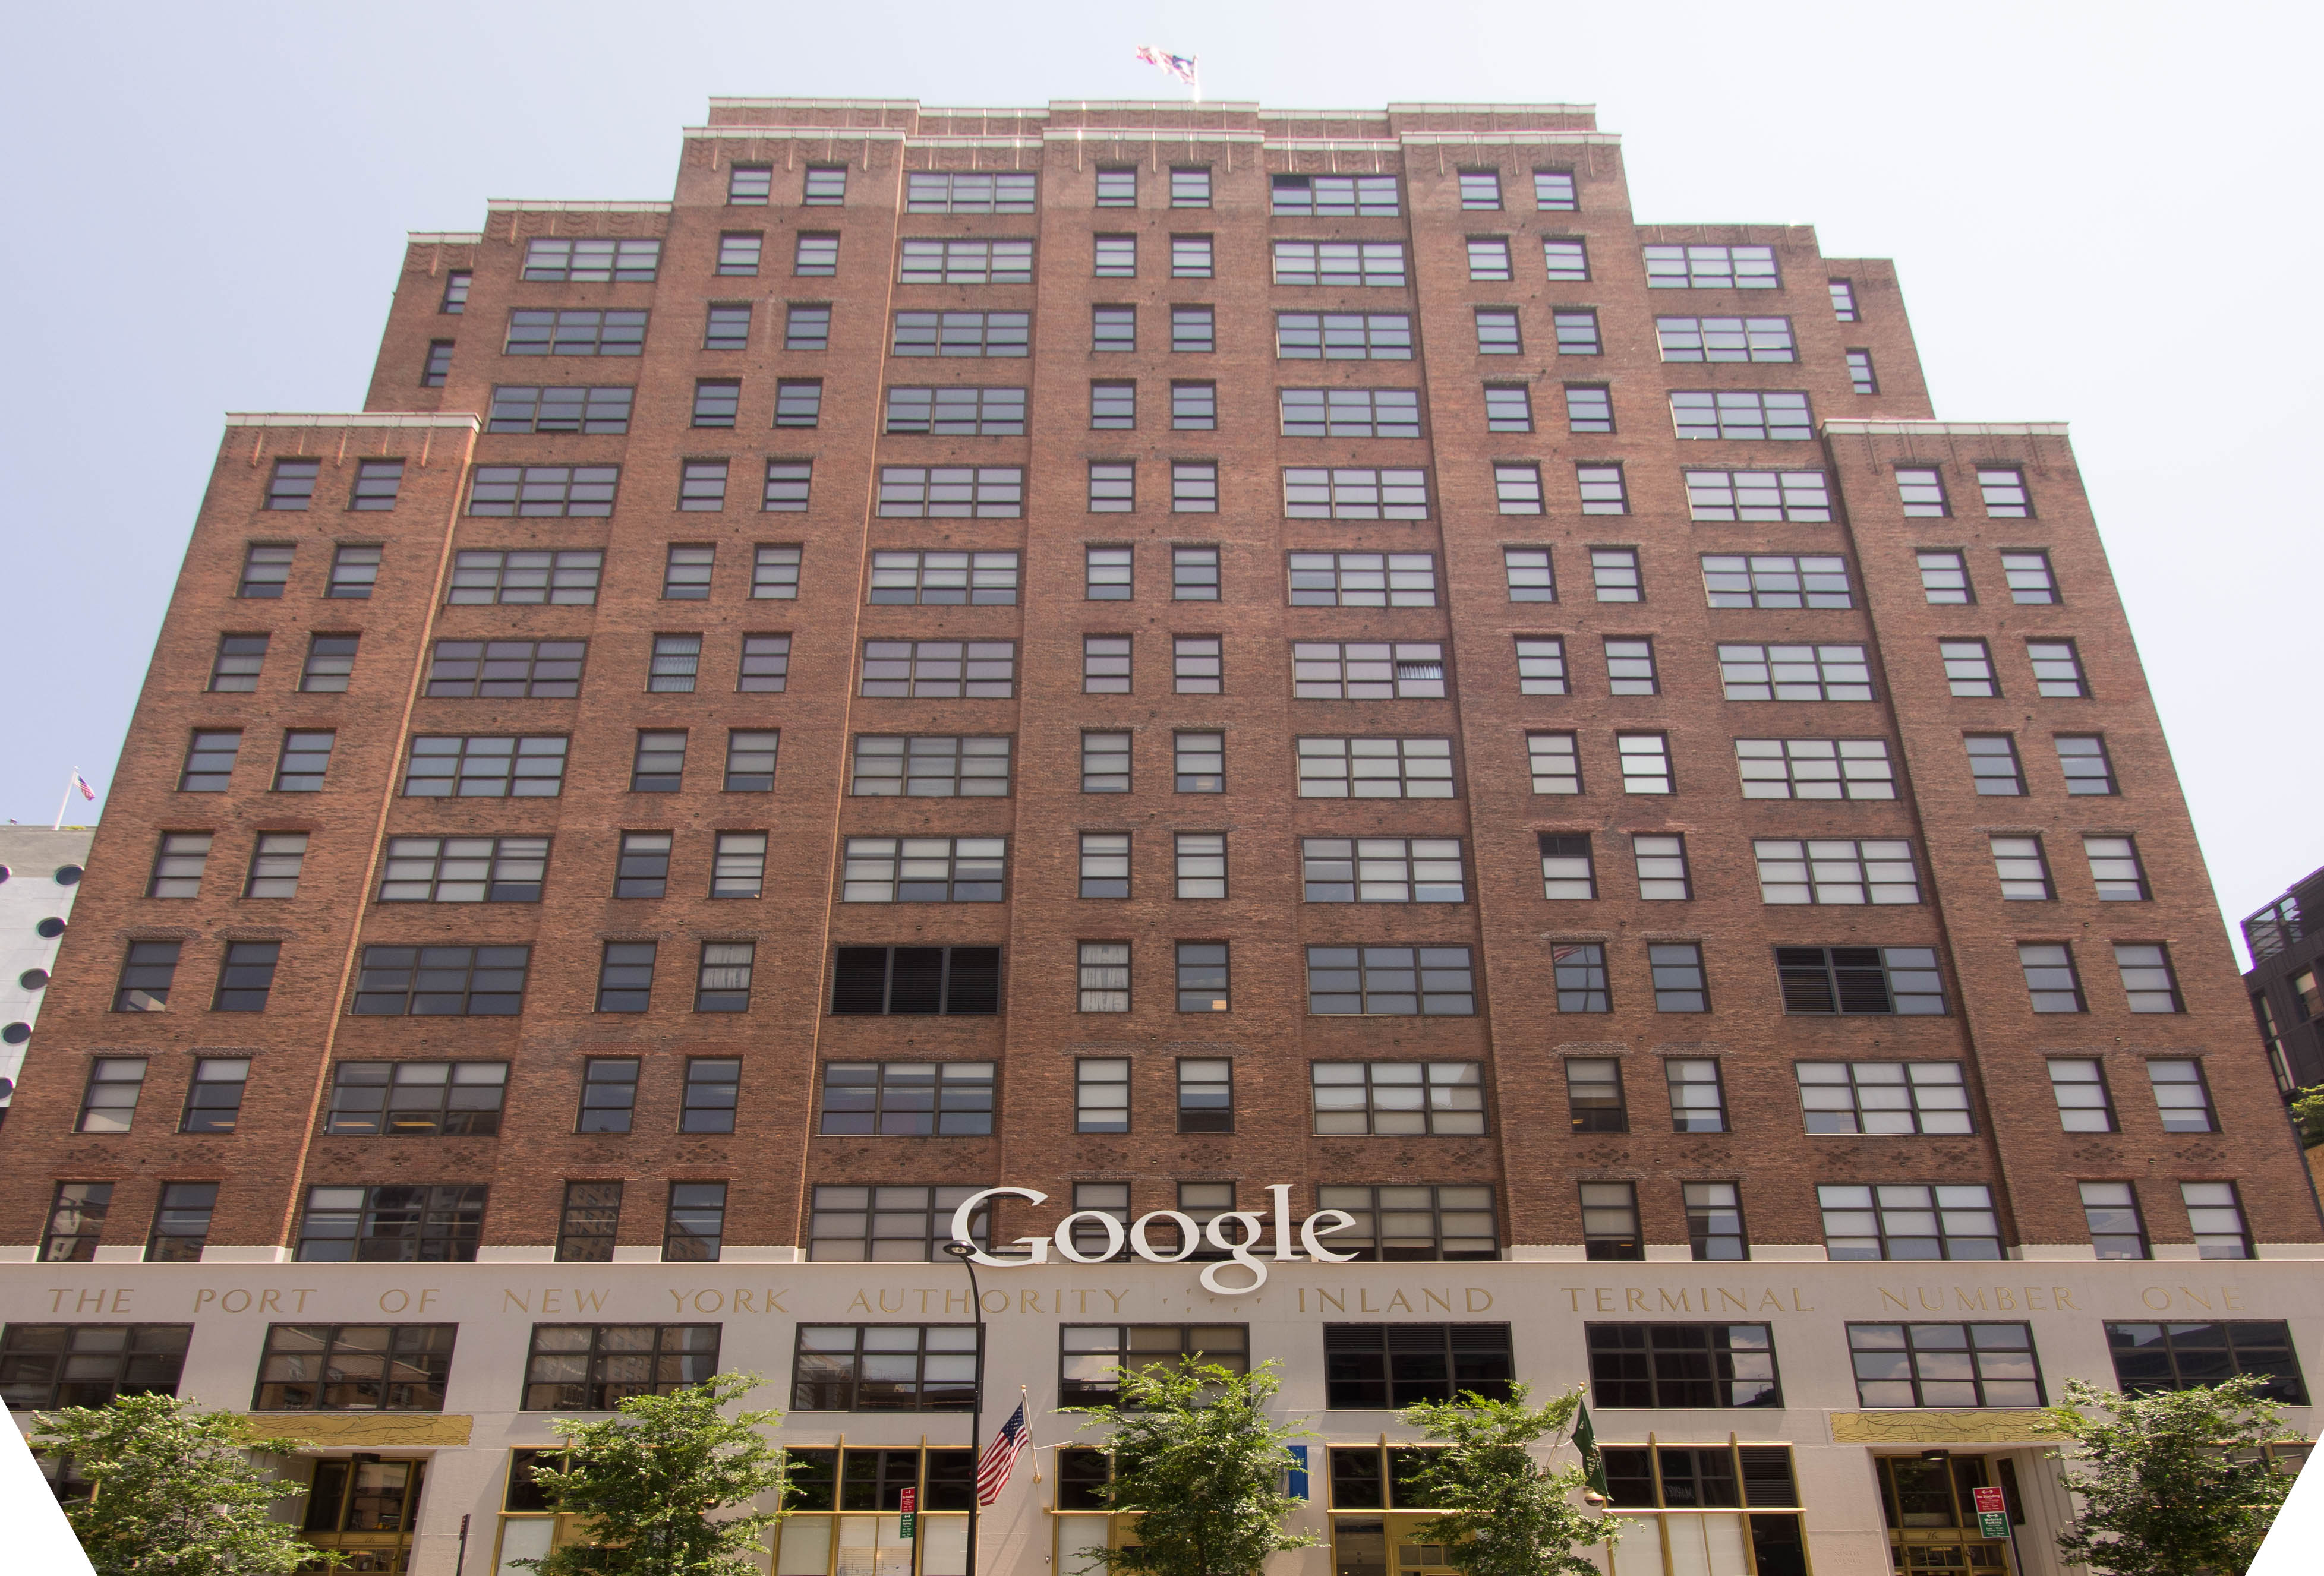 Google leases new office in downtown Portland